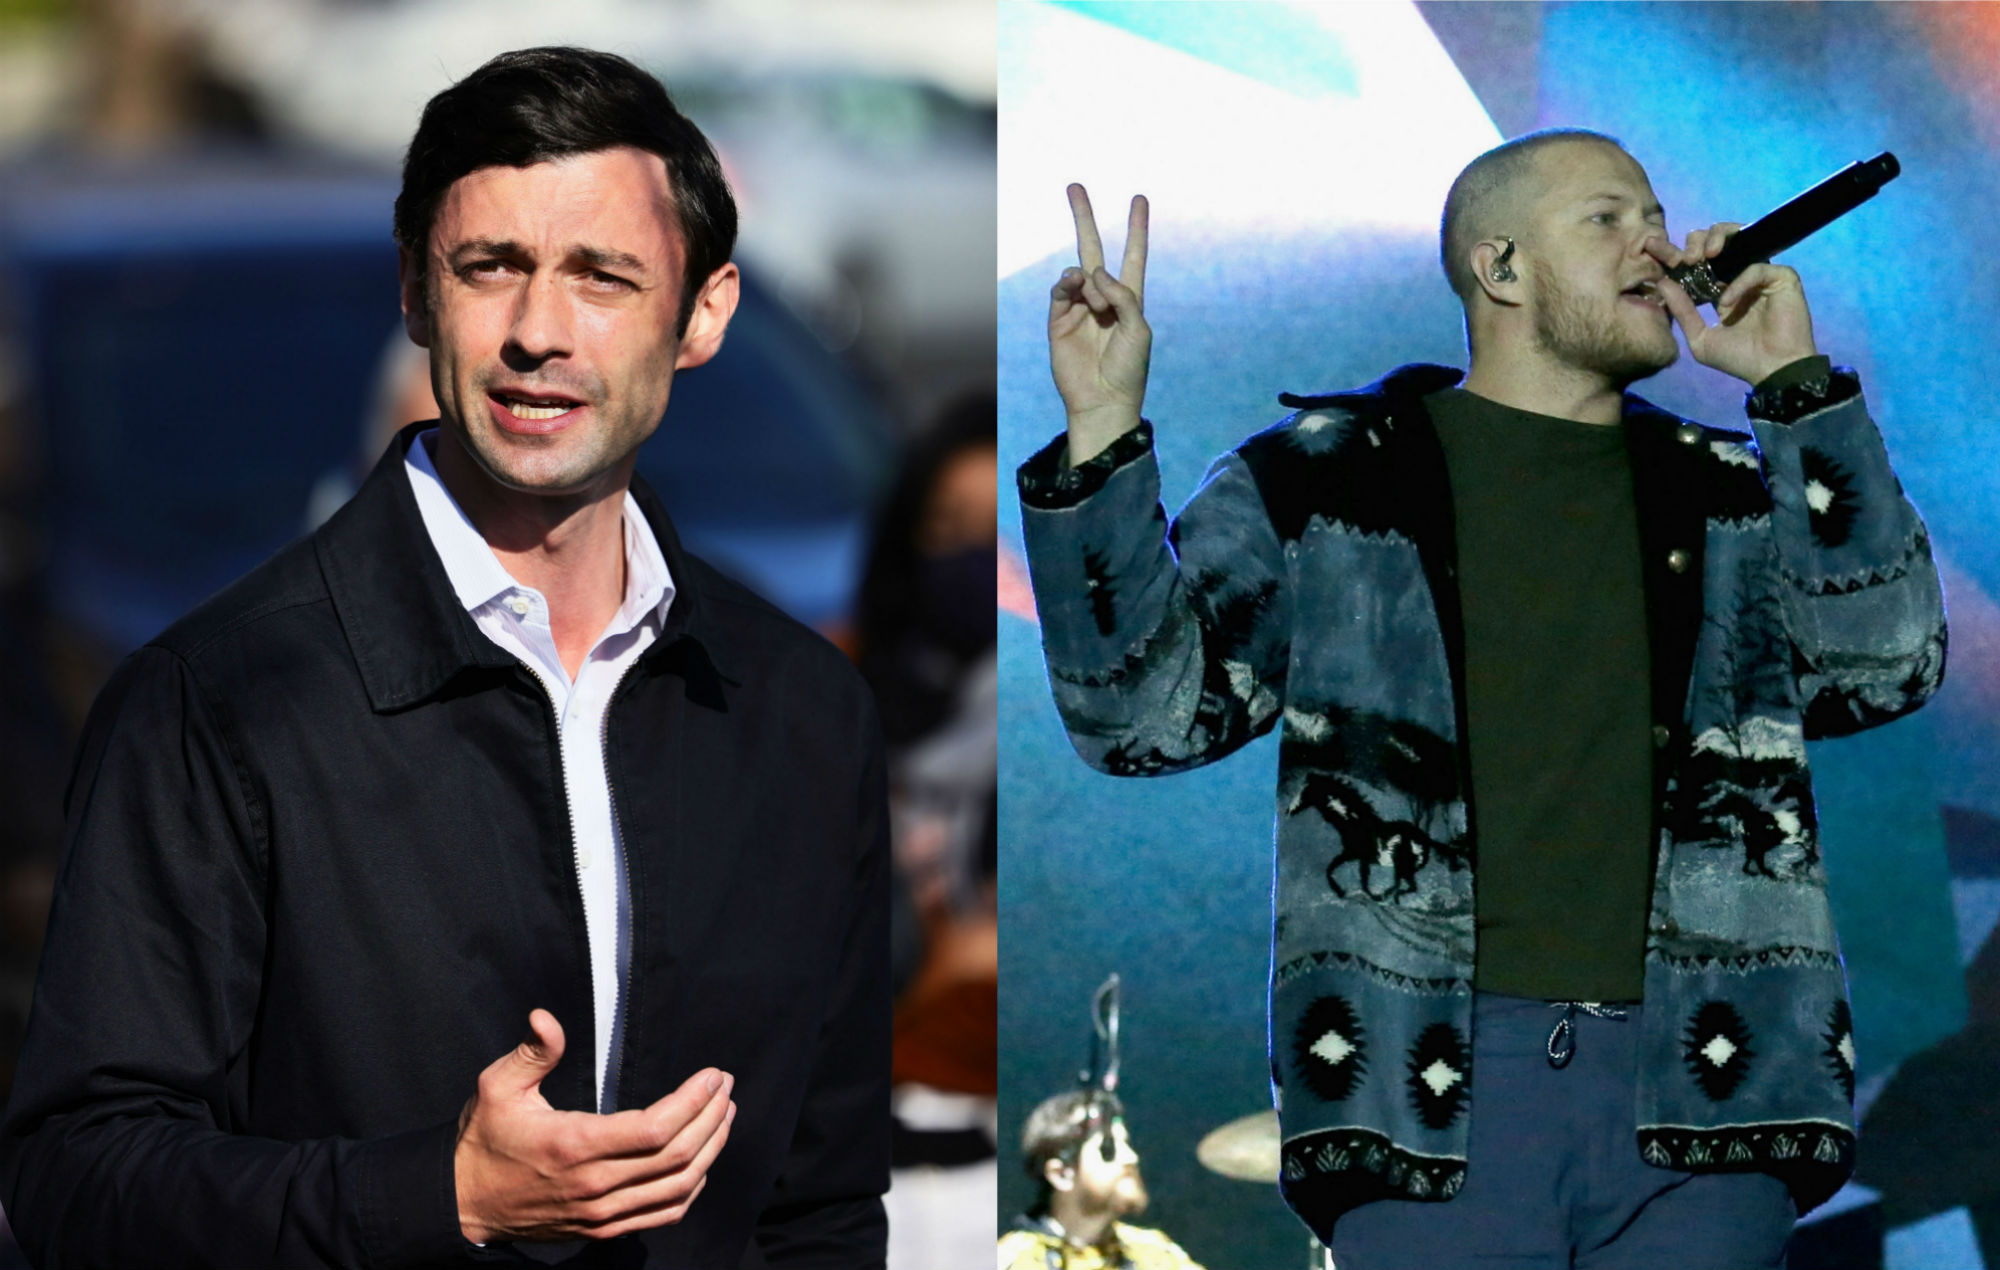 Twitter users have rediscovered Jon Ossoff's old tweet about Imagine Dragons